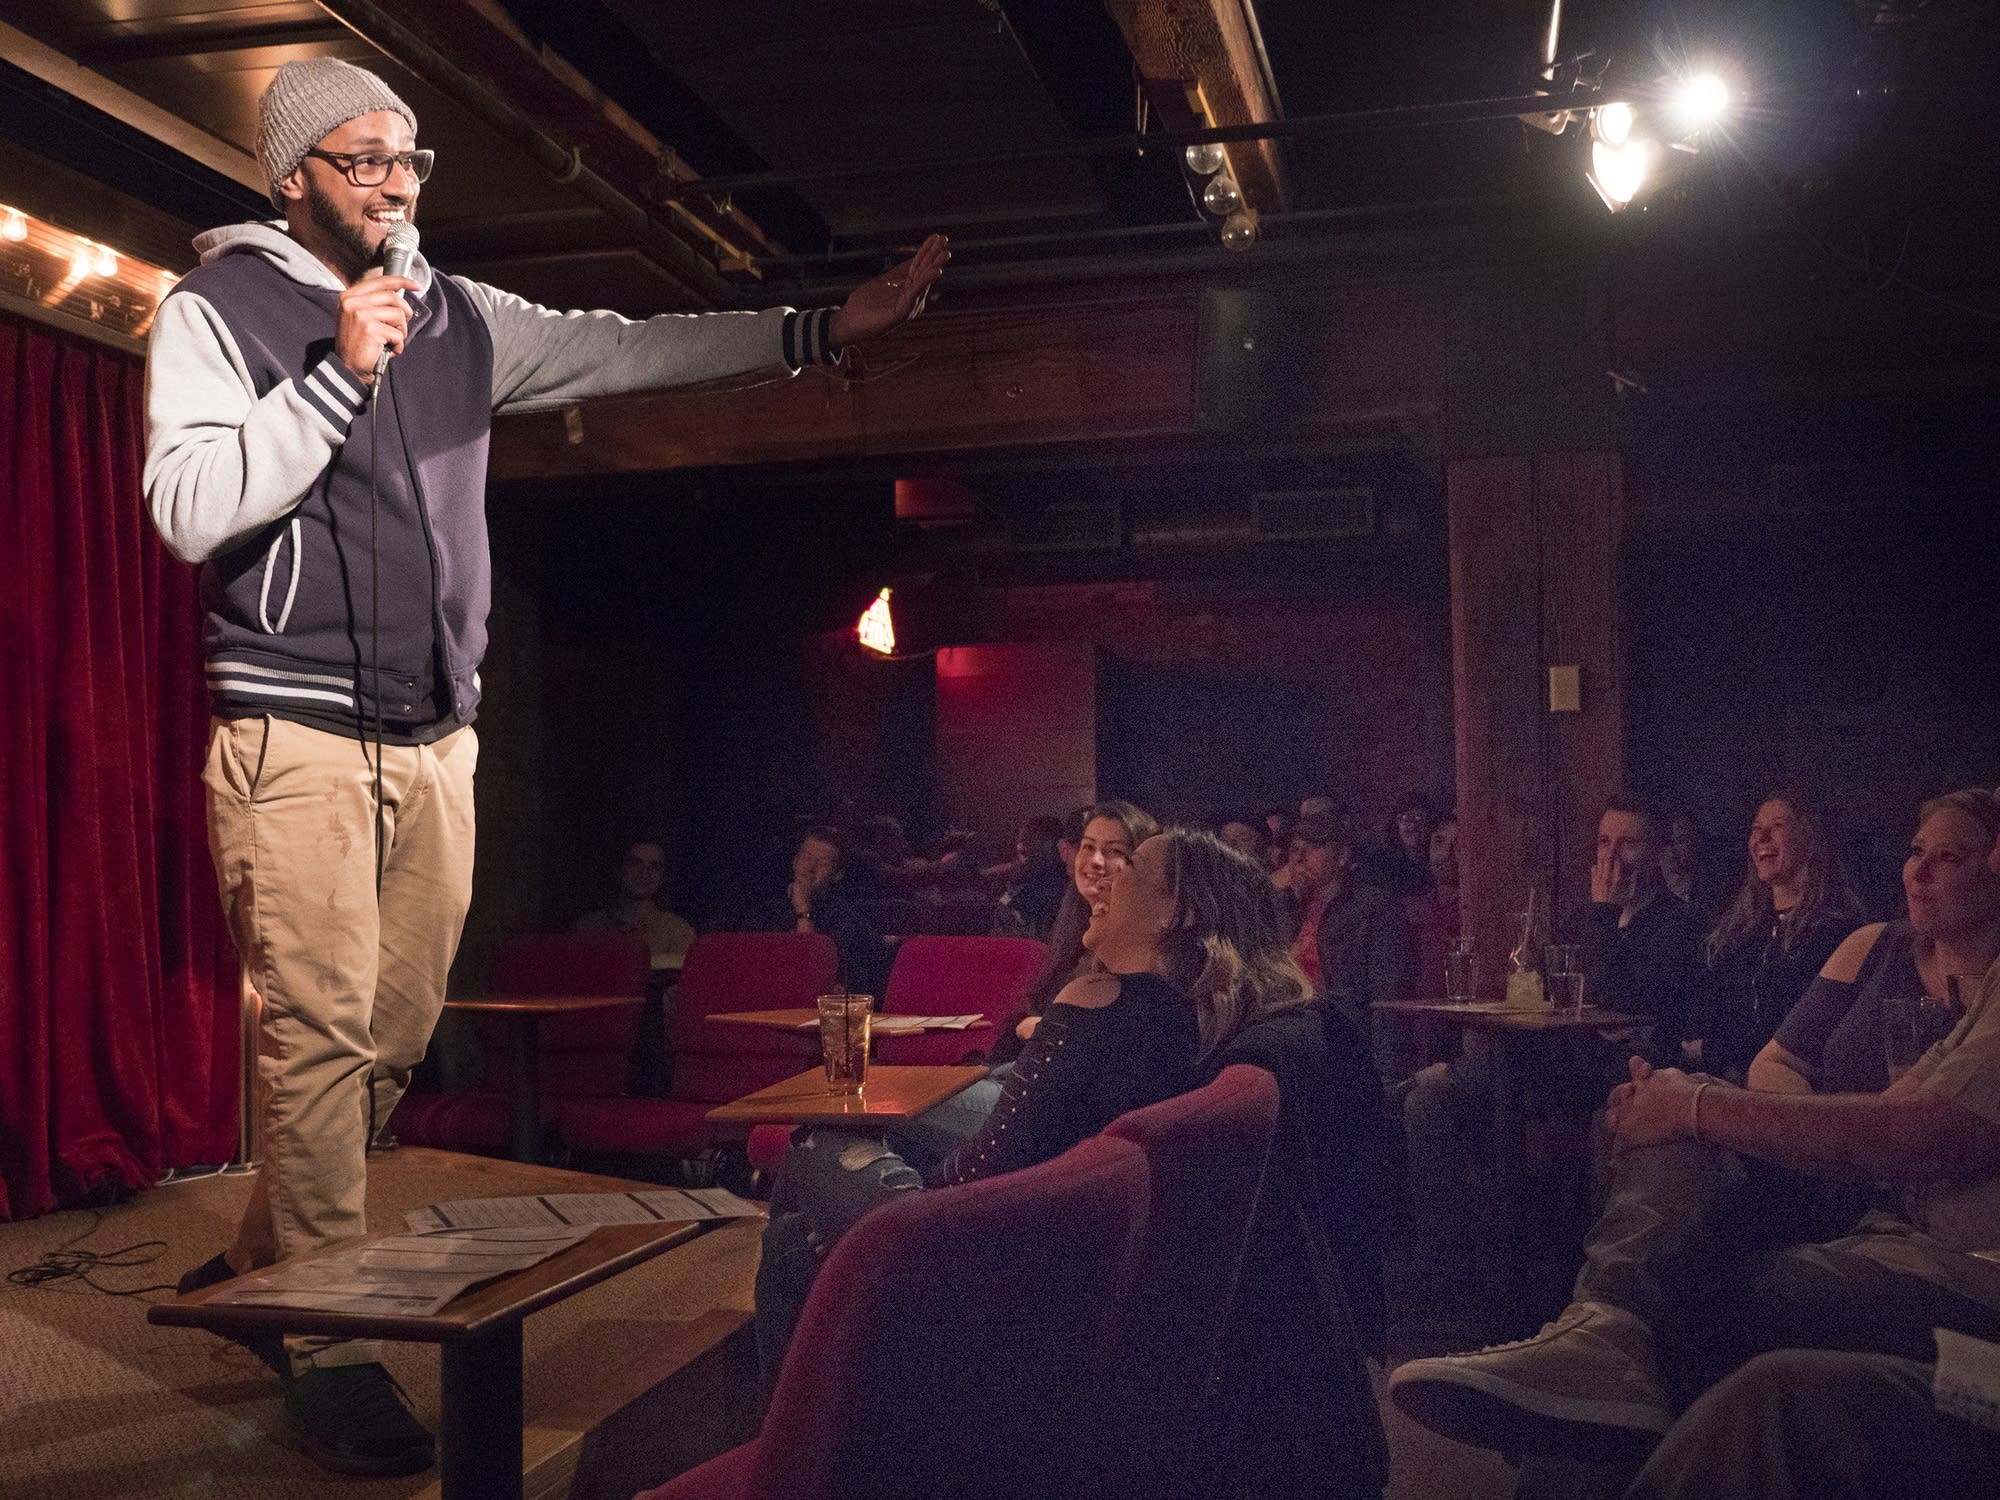 Ali Sultan's comedy act was a hit, keeping the crowd laughing constantly.